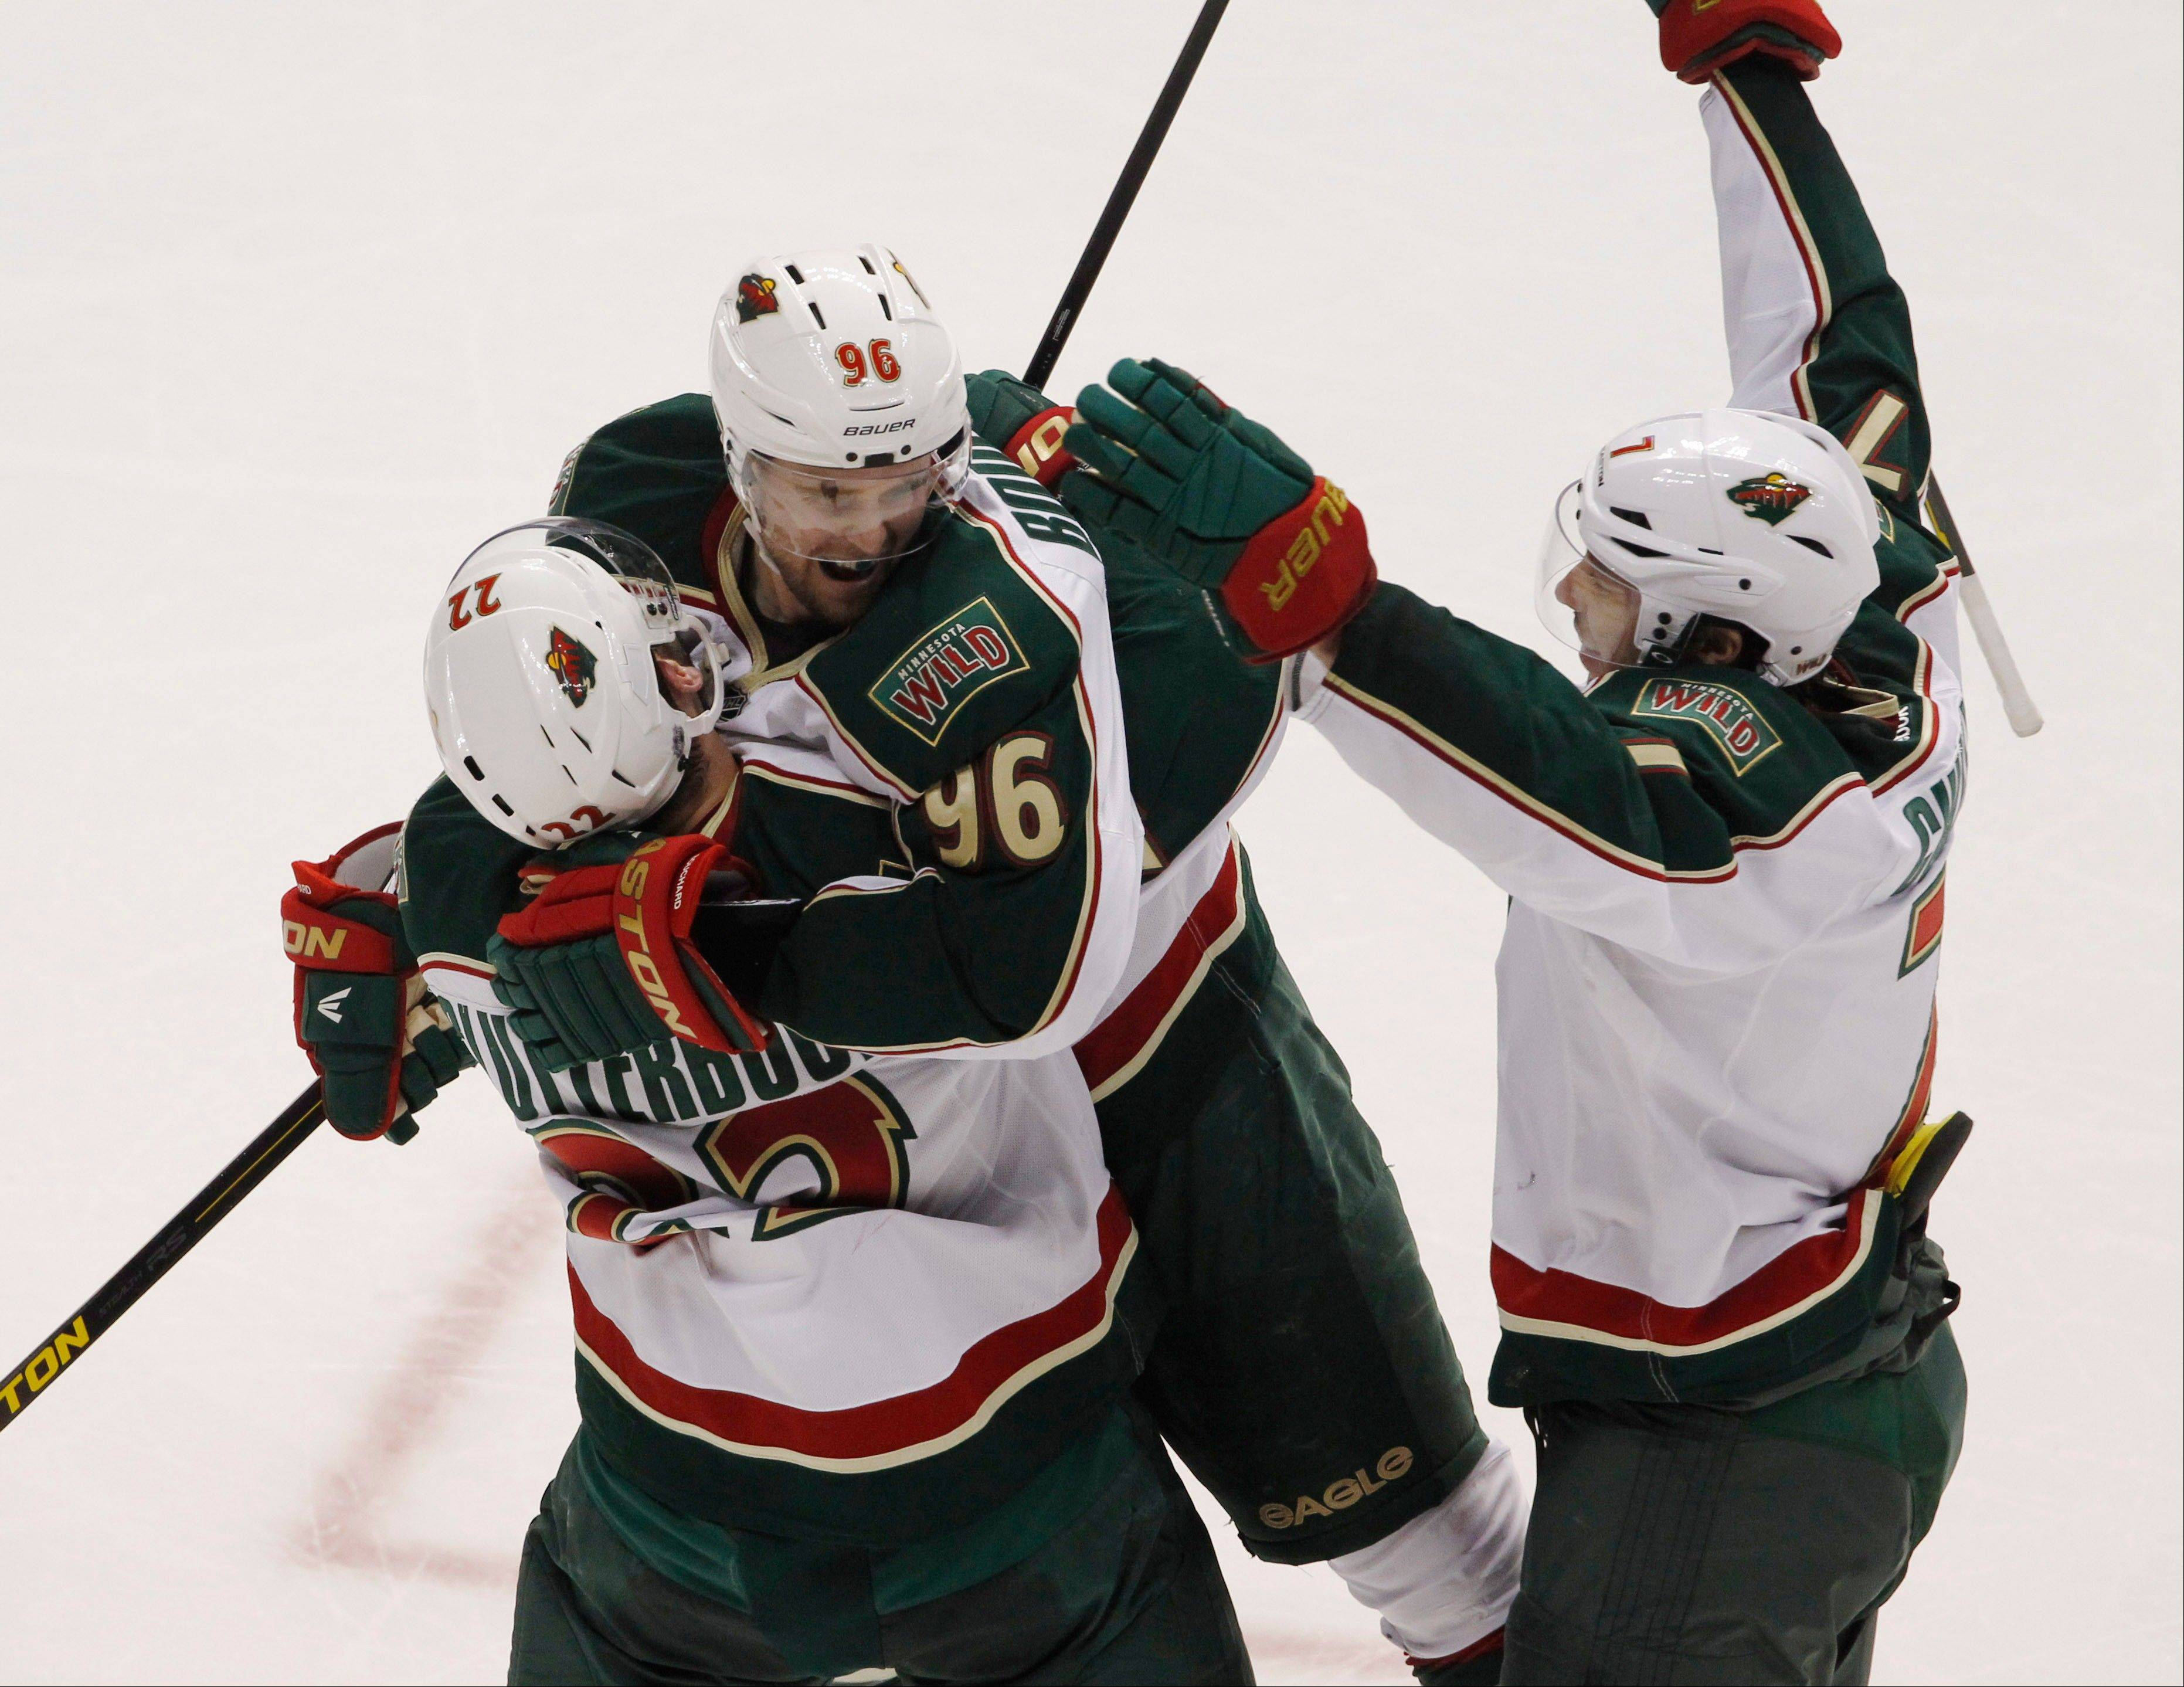 Minnesota left wing Pierre-Marc Bouchard, center, celebrates after his open-net goal with right wing Cal Clutterbuck, left, and center Matt Cullen late in the third period of the Wild's 3-1 victory over Colorado on Saturday. The Wild will face the Blackhawks in the opening round of the NHL playoffs.